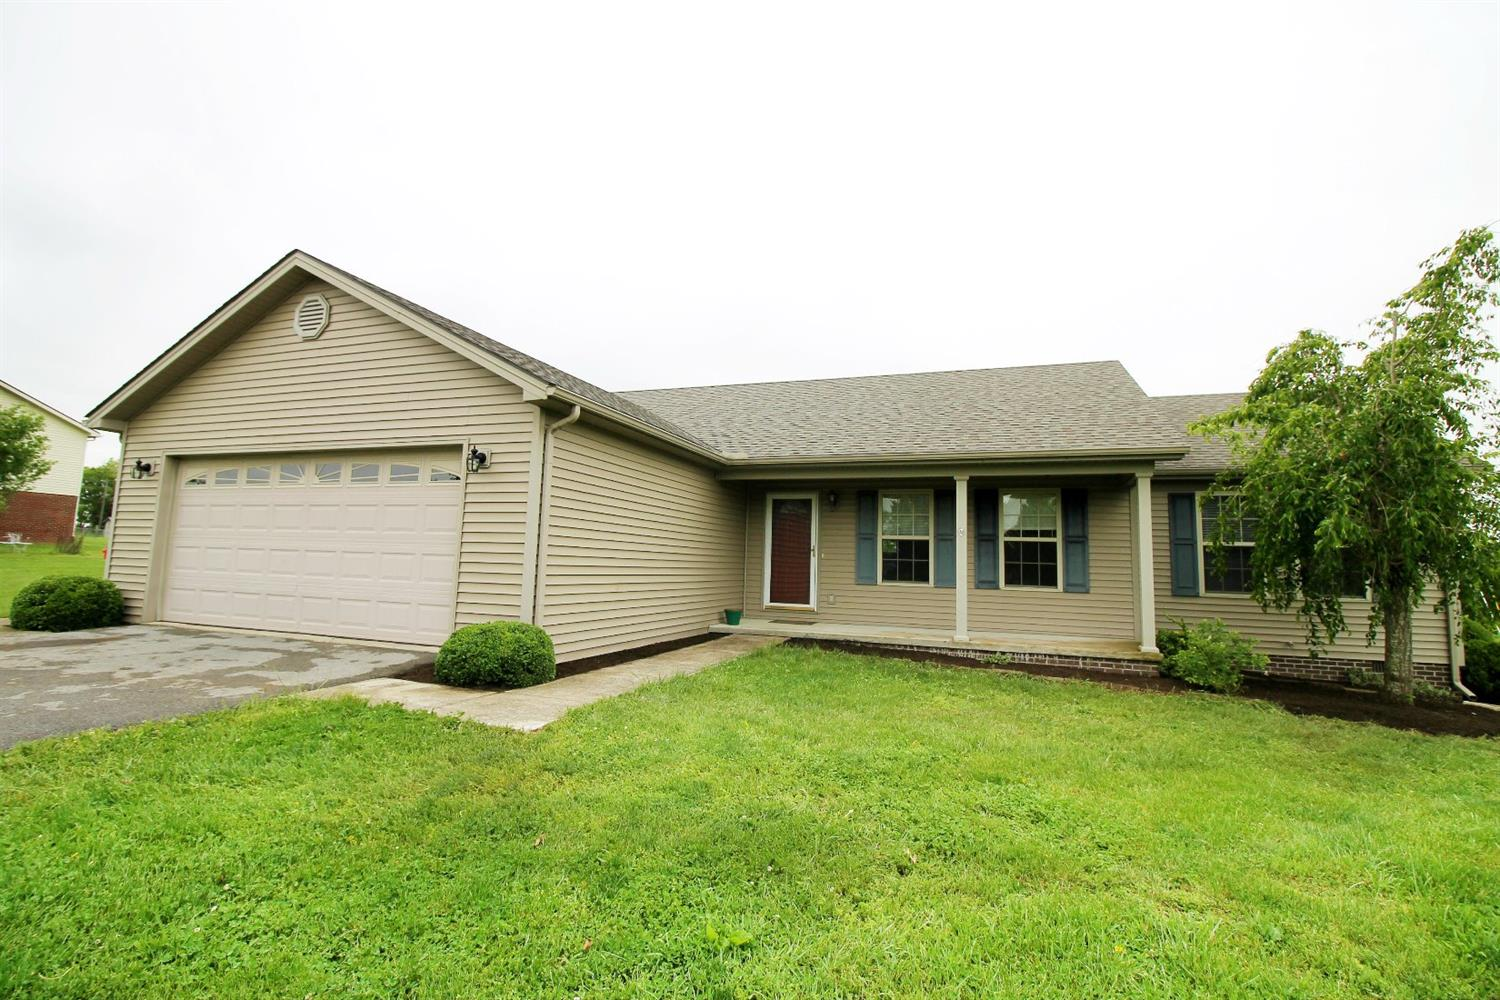 Home For Sale at 361 Kings Trace Dr, Berea, KY 40403